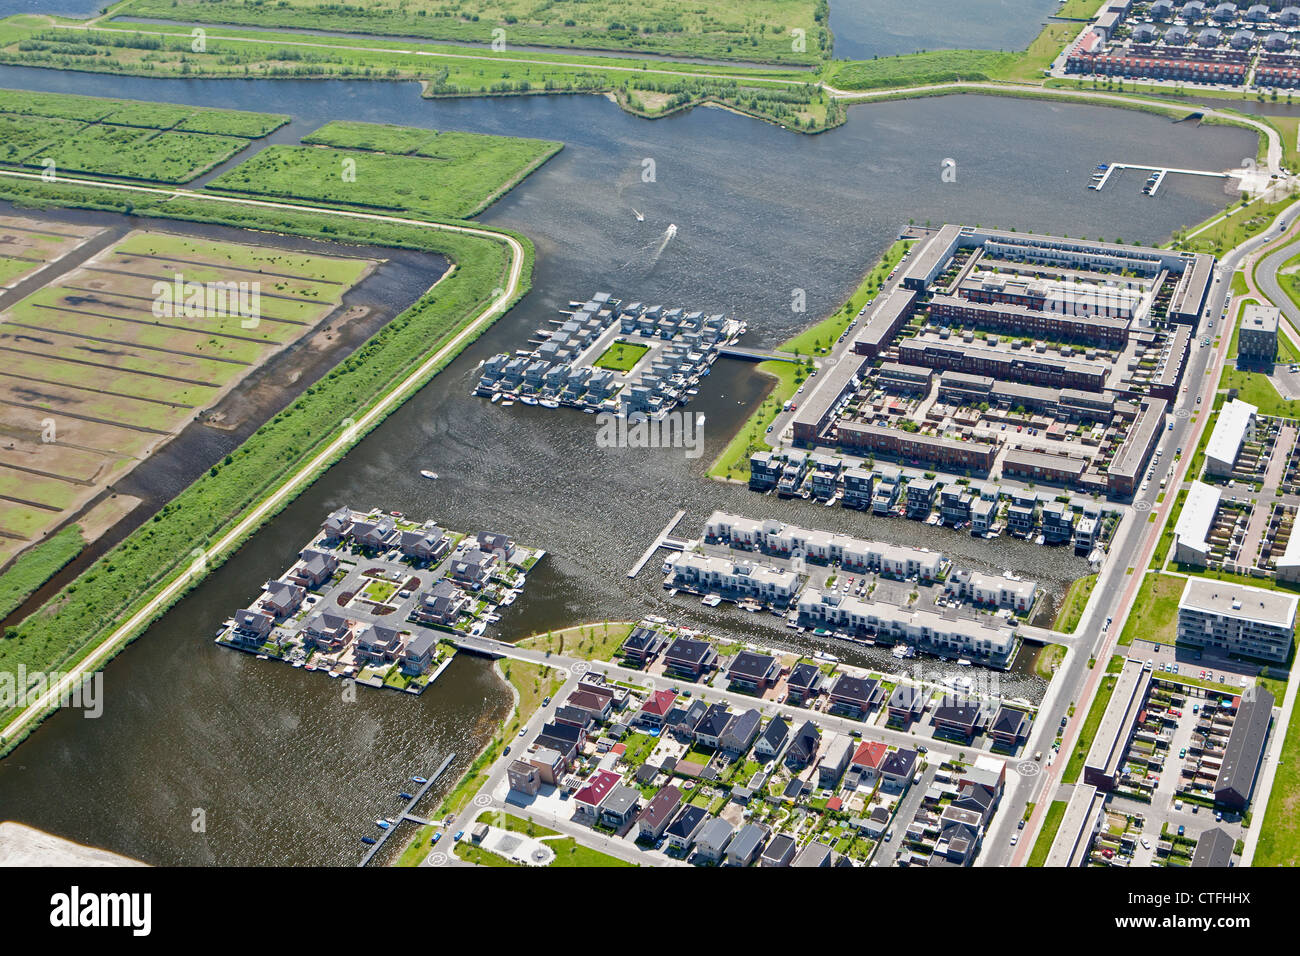 The Netherlands, Almere, Residential areas. Aerial. - Stock Image